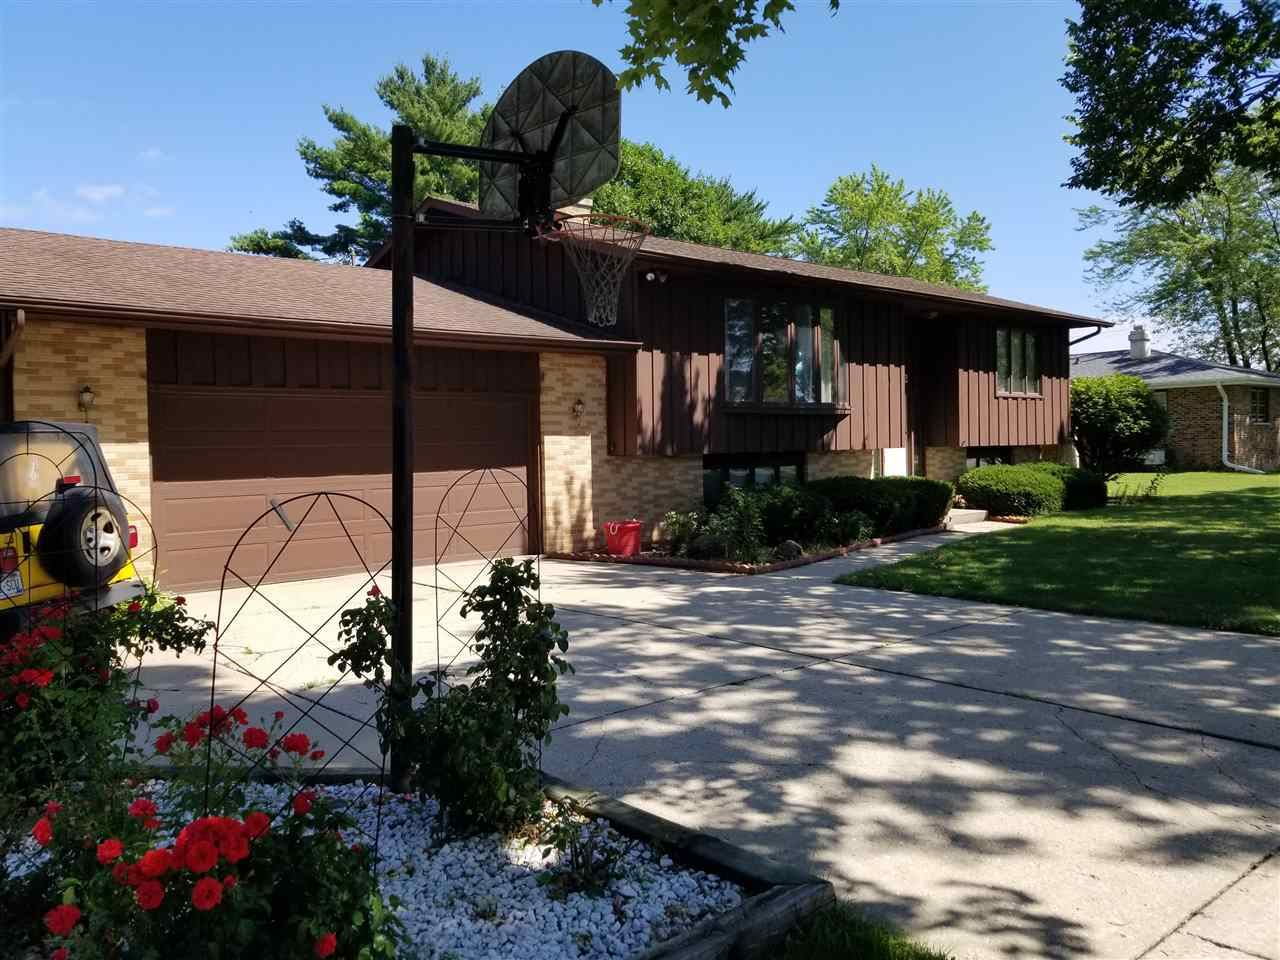 f_1888128_01 Our Listings at Best Realty of Edgerton